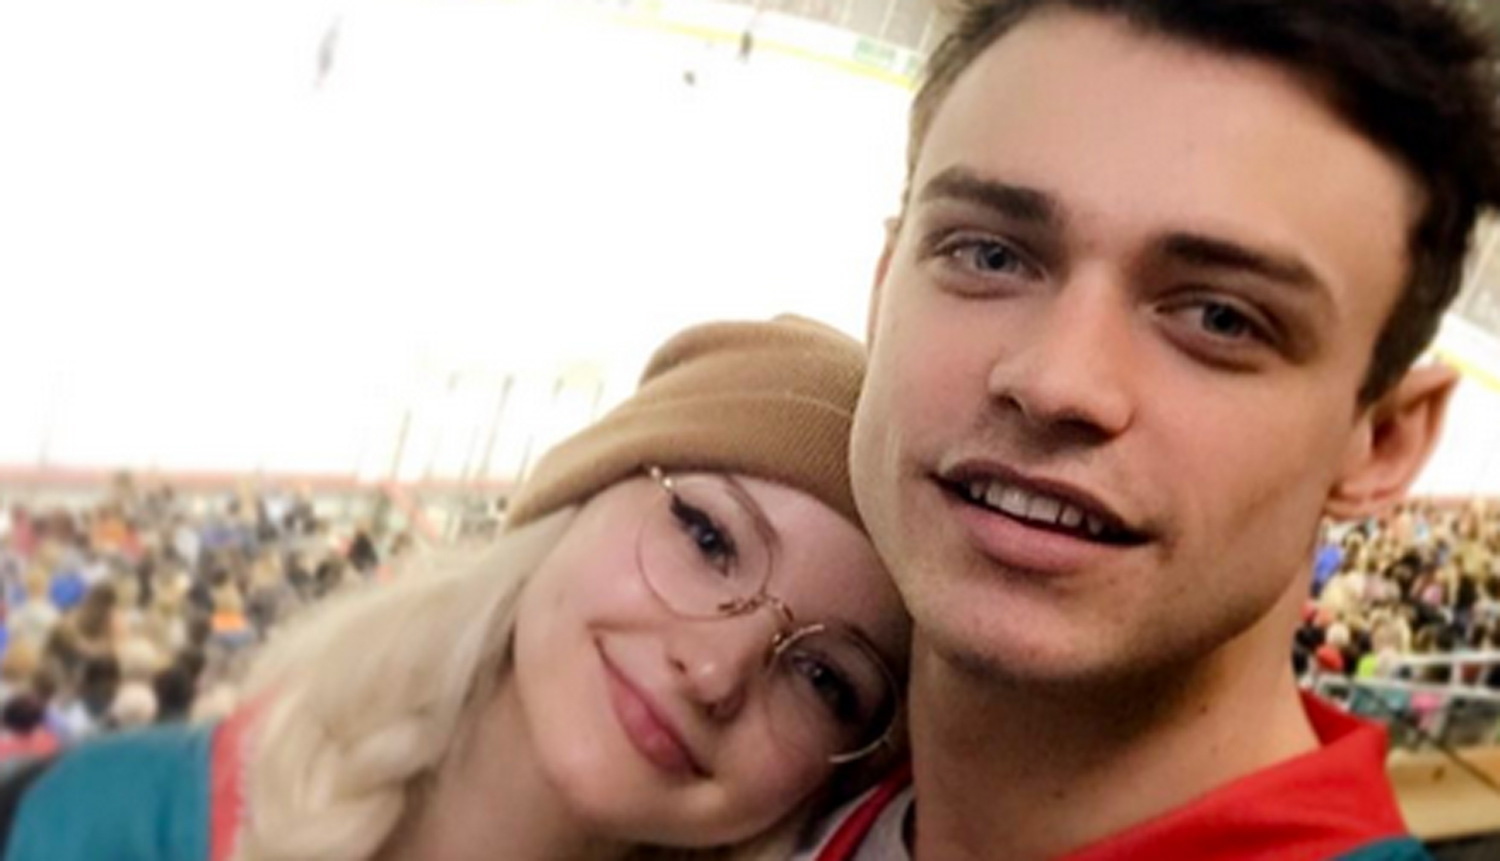 China mcclain breaking news and photos just jared jr page 5 - Dove Cameron Adorably Sings Thomas Doherty To Sleep Then Takes A Pic Dove Cameron Thomas Doherty Just Jared Jr